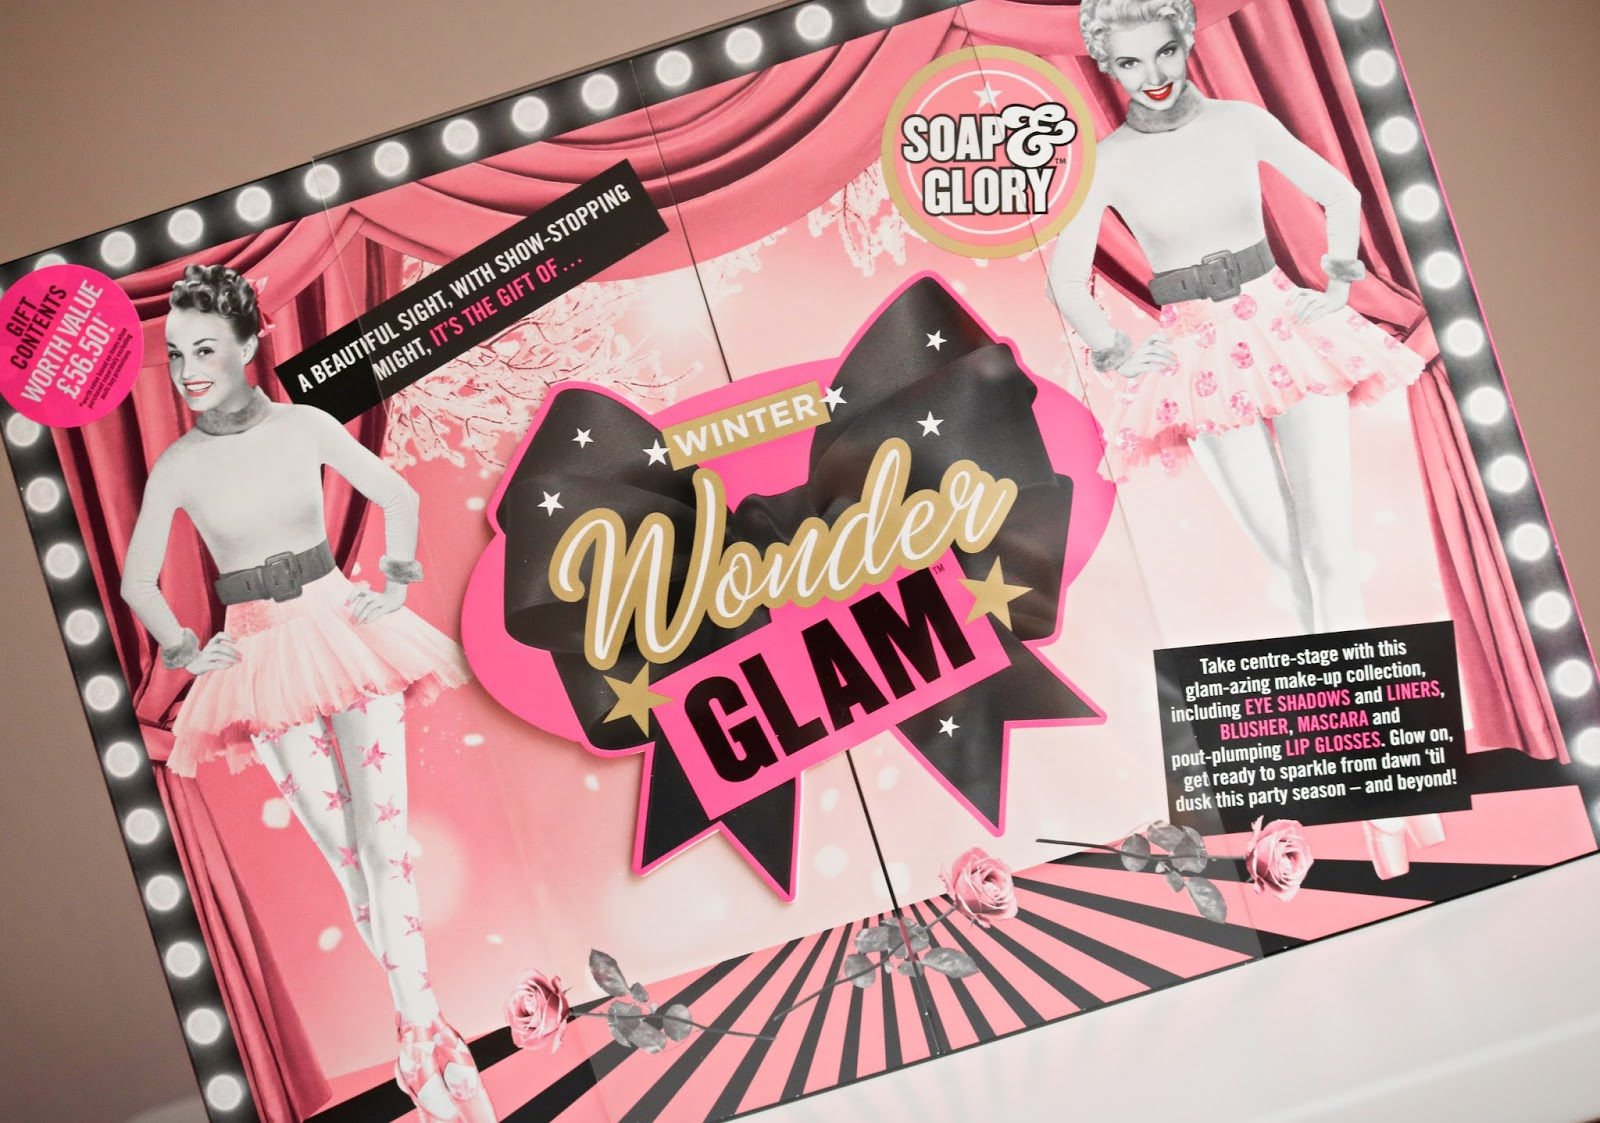 the wonderful winter wonder glam gift set from soap glory is available at boots now where it will cost 25 for a very limited time so be quick and dont